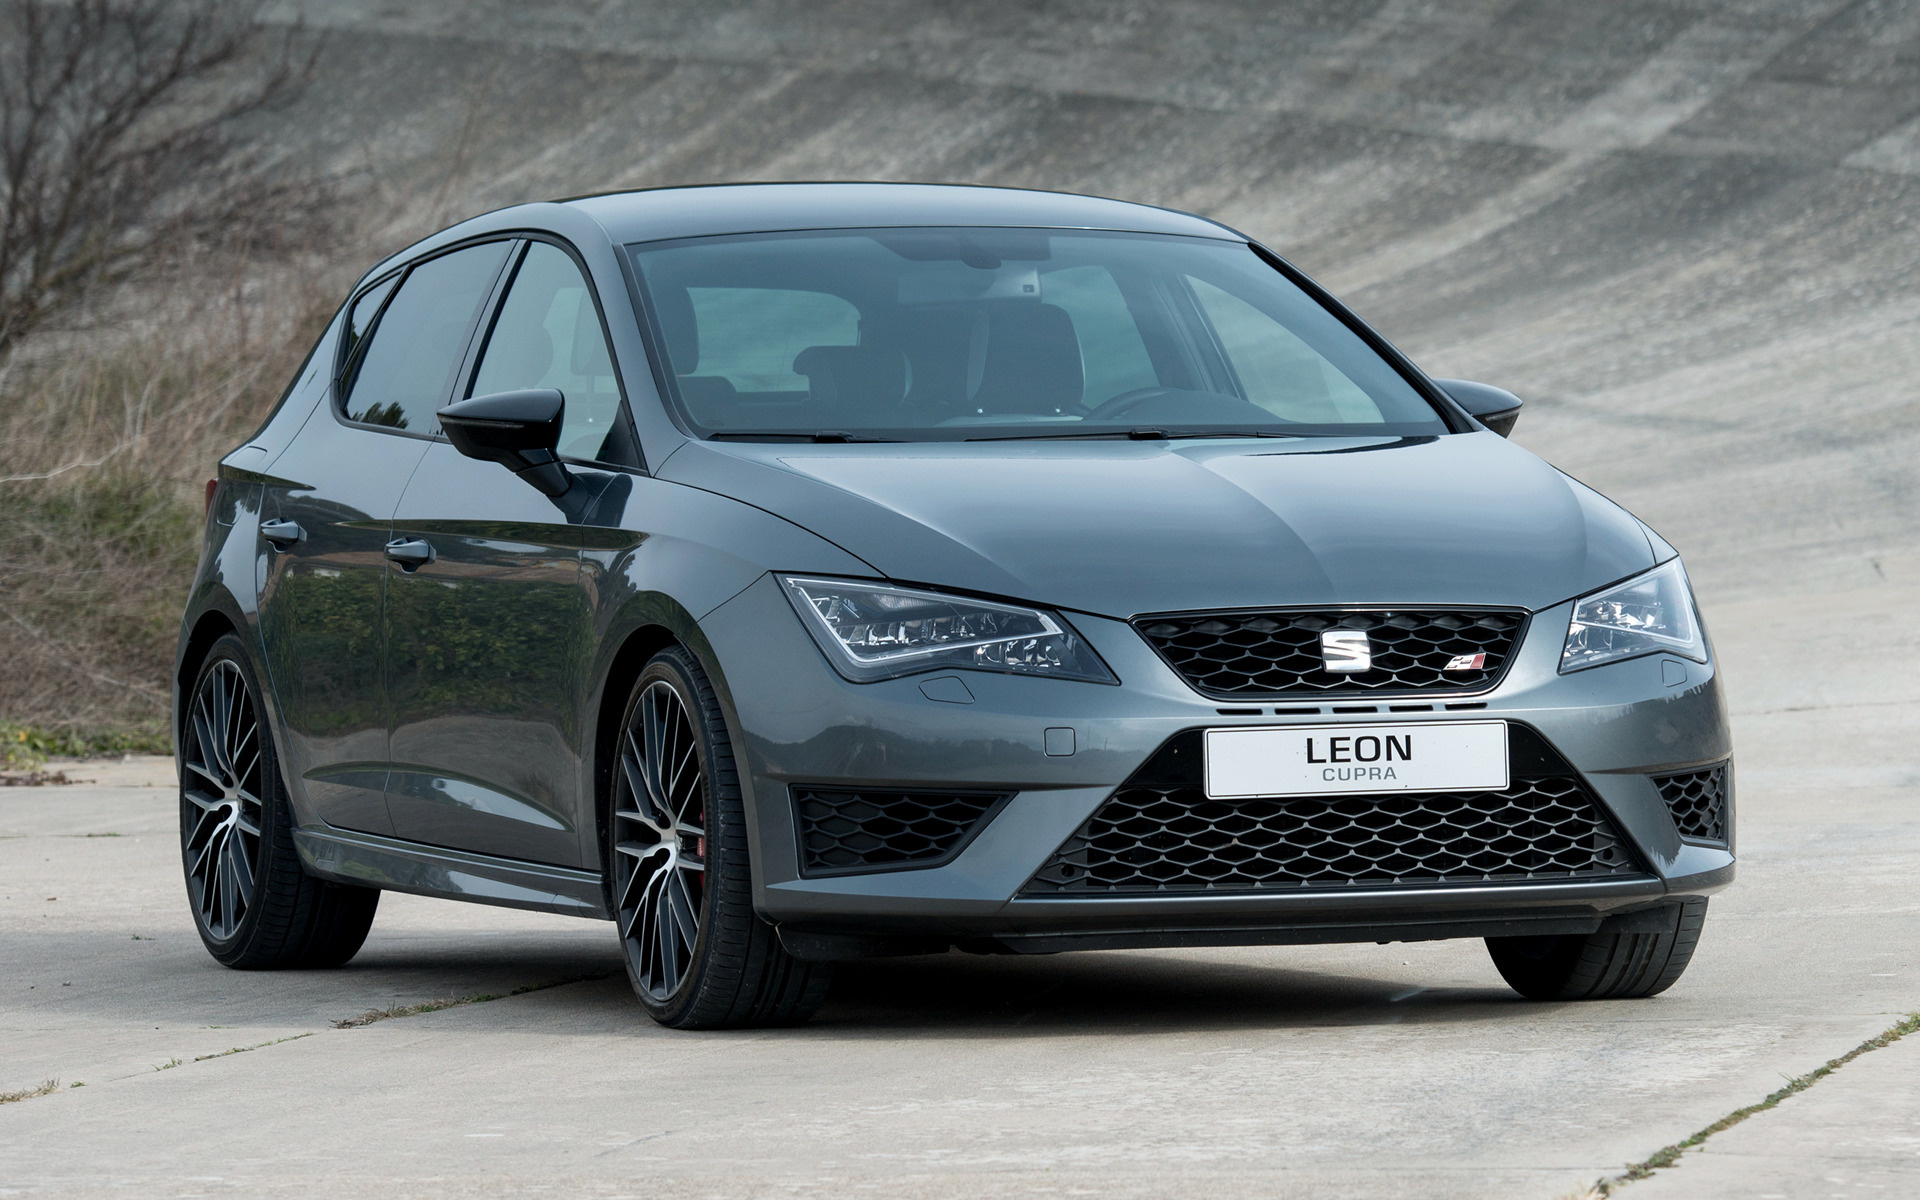 seat leon cupra 290 2015 wallpapers and hd images car. Black Bedroom Furniture Sets. Home Design Ideas